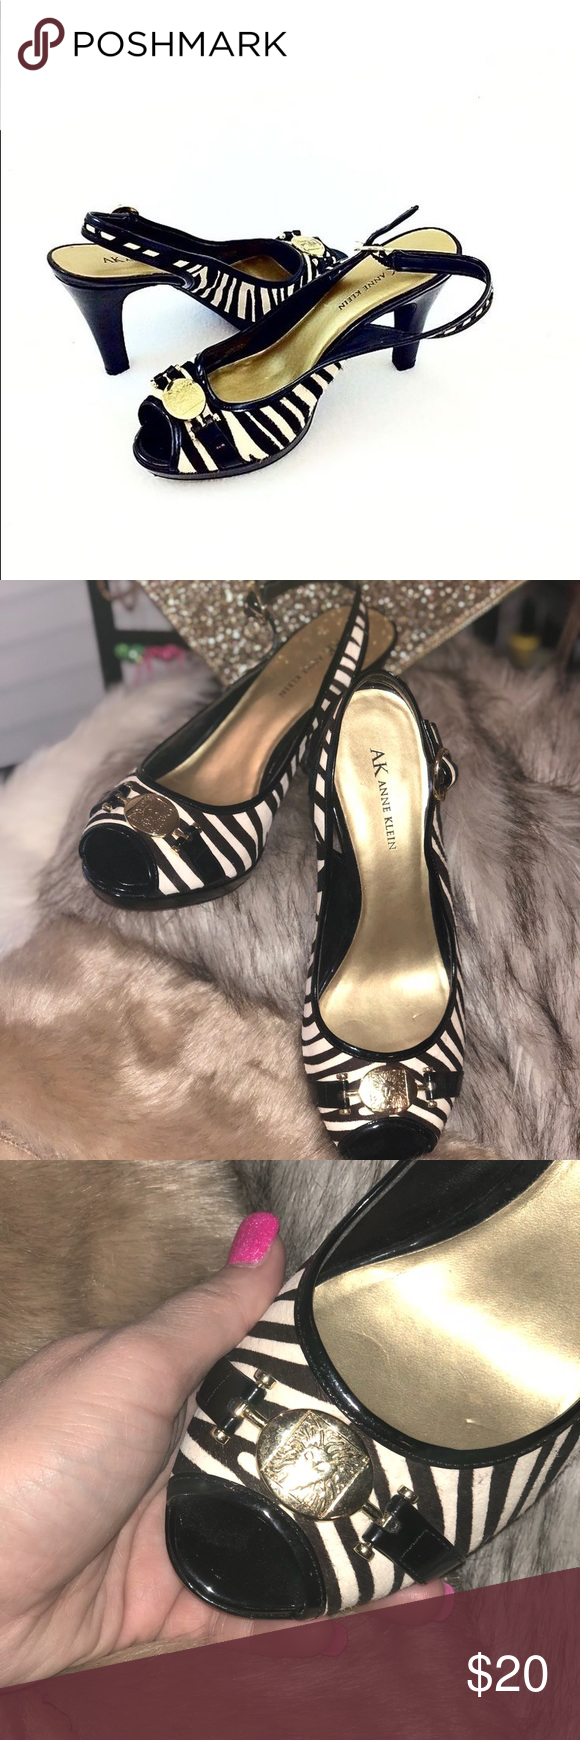 ANNE KLEIN iFlex Sling Real Fur 10 M Zebra 🦓 Women in Black & White Zebra print real fur with Patent Heel and adjustable slingback.  Gold medal accent across toe.  Great classic and timeless style.  Perfect for work or for special occasion. Around 3 inch heel.  Size:  10 Medium  Color:  Black & White Zebra Stripe  Brand: Anne Klein iFlex  Condition:  New Without Tags - Excellent Pre-owned condition - couple of minor dings on heel.  Material:  Real fur Upper Balance Man Made Material Items…